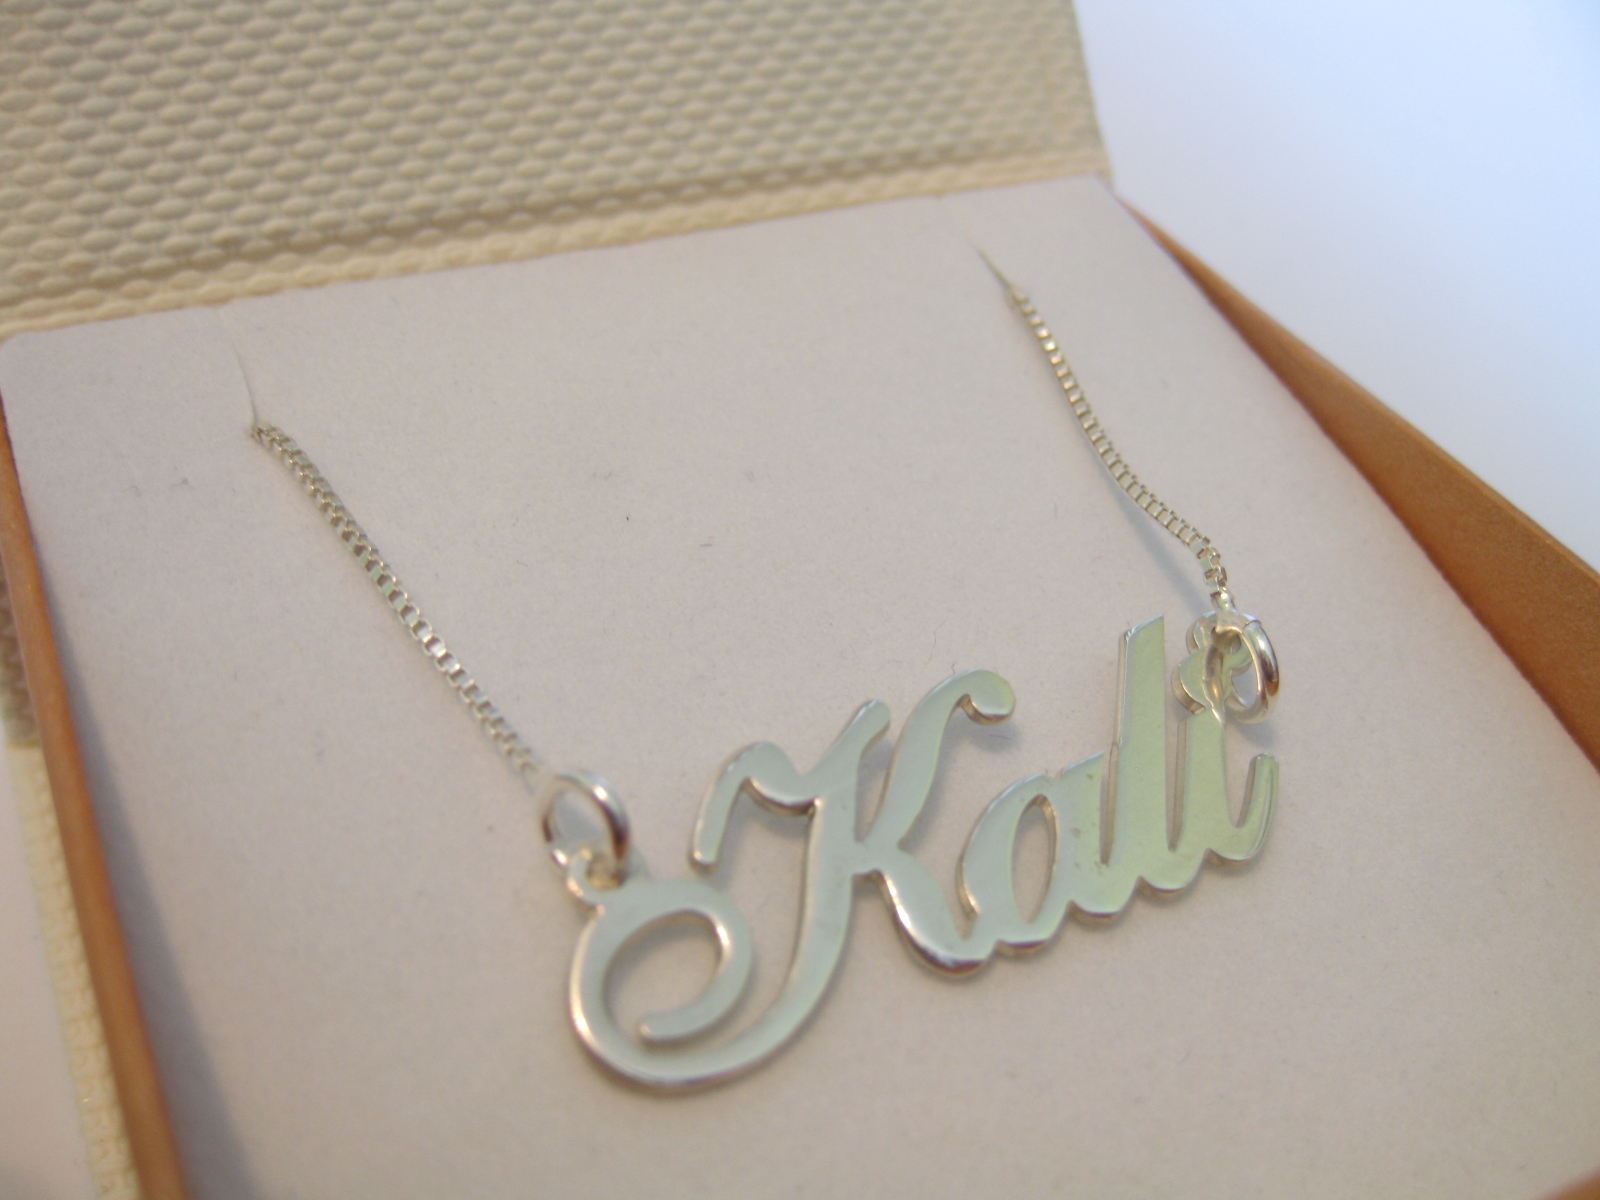 This nameplate necklace is available for purchase in three metals sterling Customized Name Necklace - From $ - Stylish & Personalized [more].